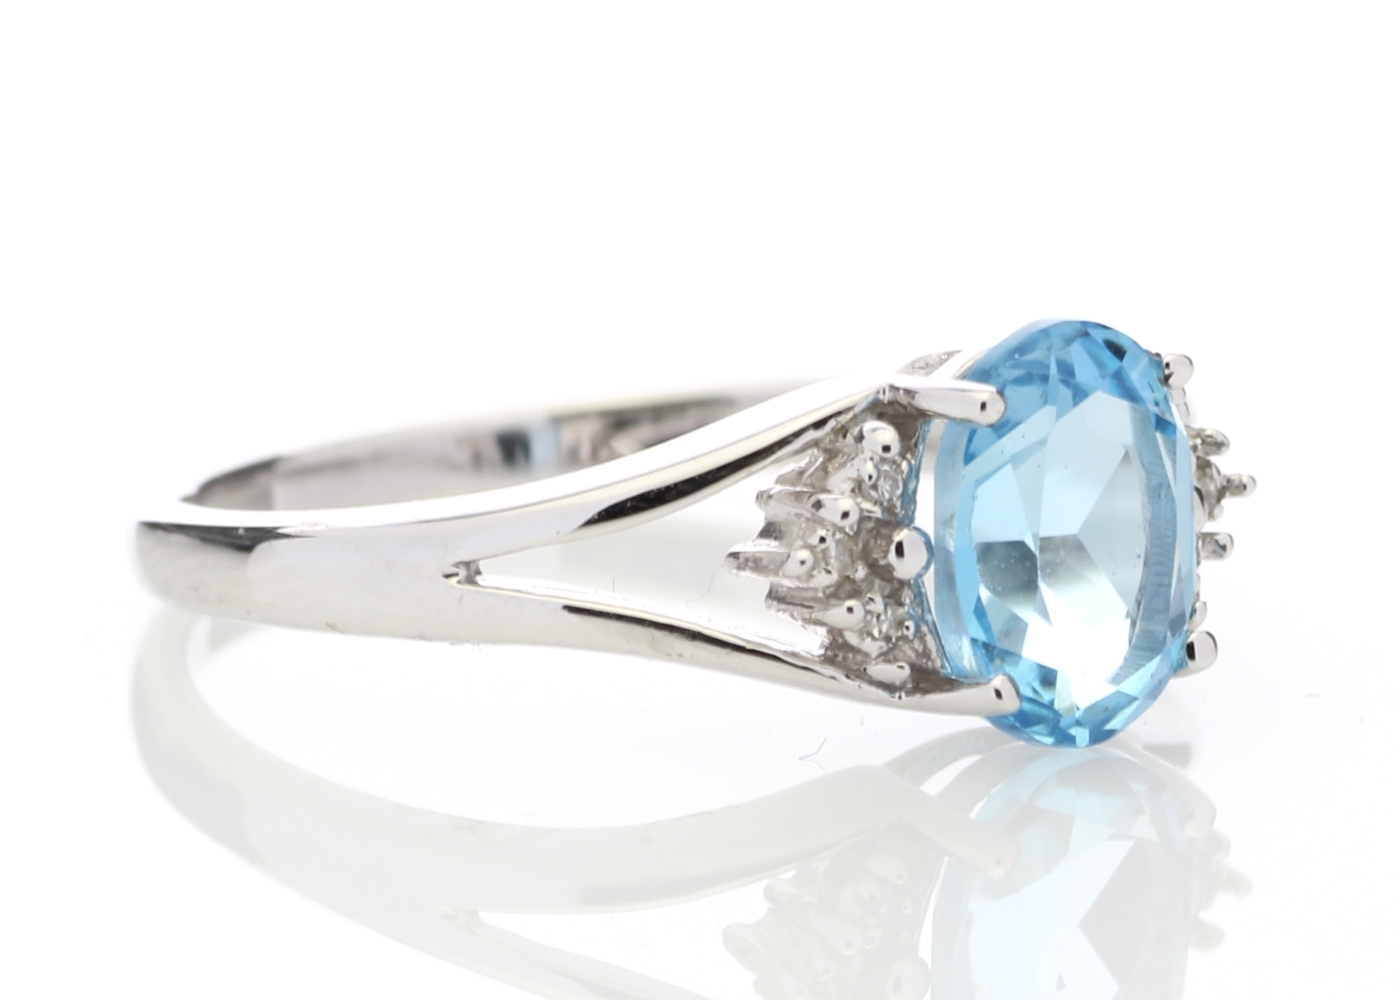 Lot 53 - 9ct White Gold Diamond And Blue Topaz Ring